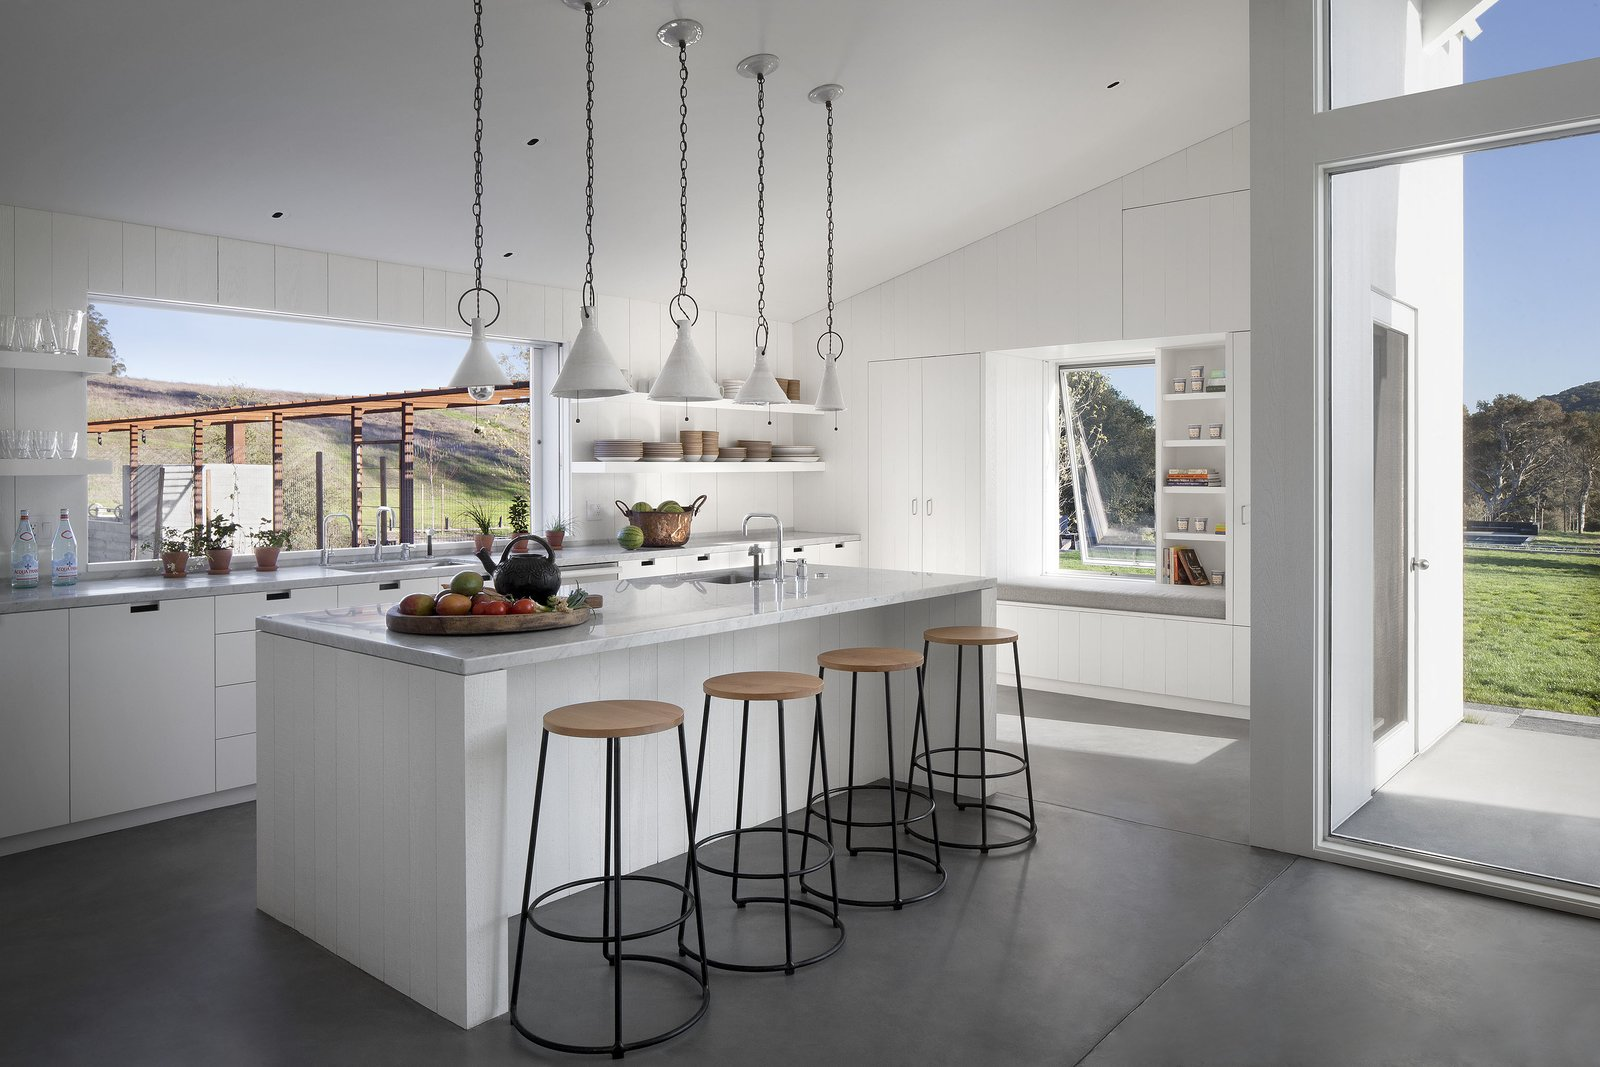 #TurnbullGriffinHaesloop #interior #kitchen #window Tagged: Kitchen, Pendant Lighting, White Cabinet, Marble Counter, and Concrete Floor.  Hupomone Ranch by Turnbull Griffin Haesloop Architects